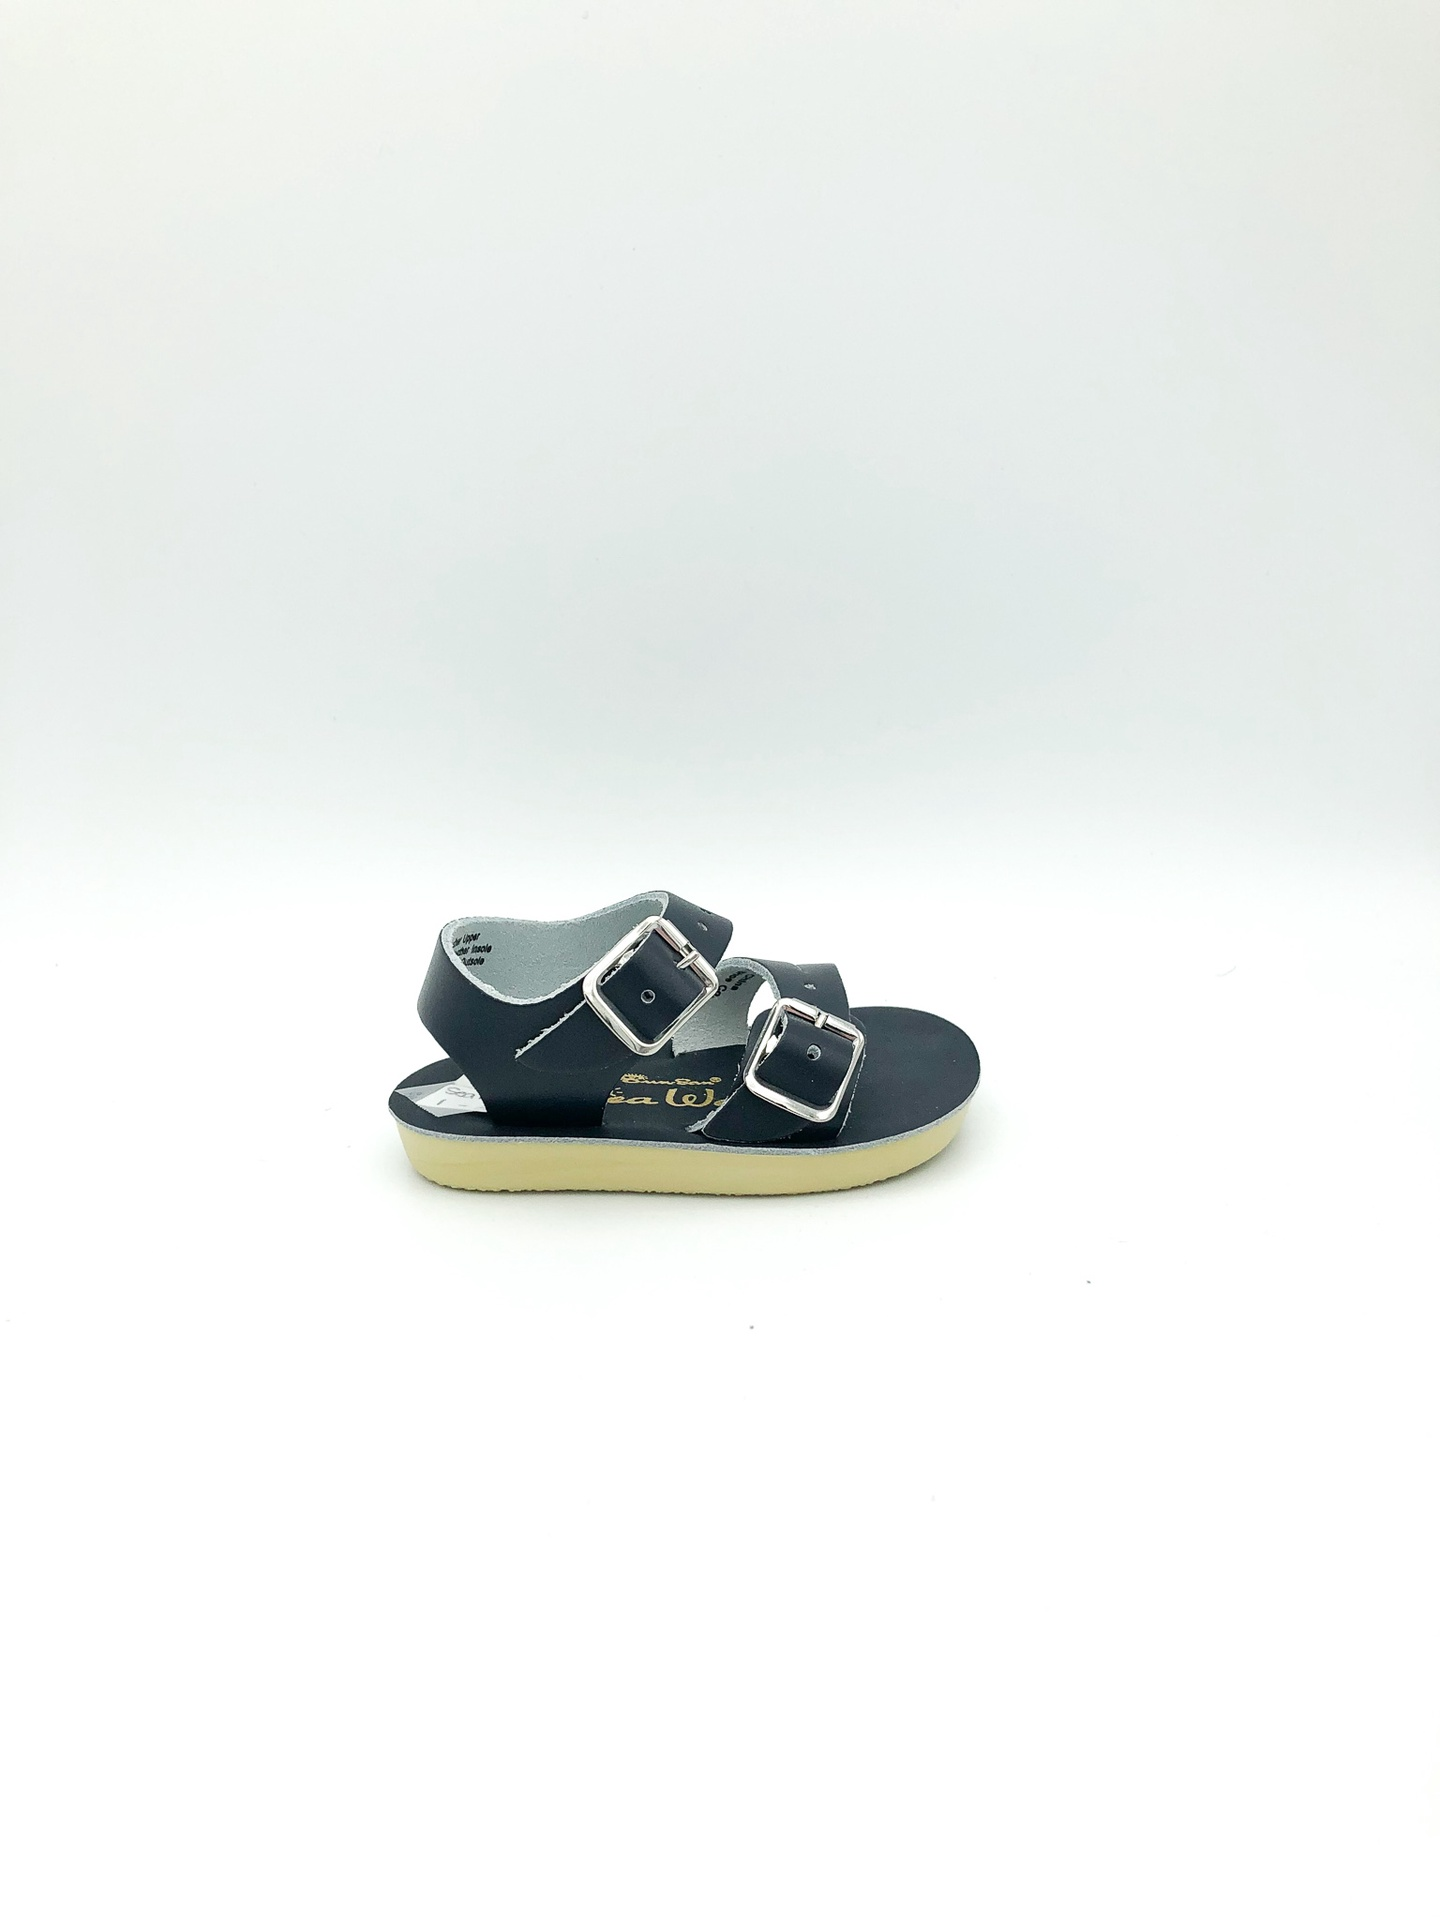 SALT WATER SANDALS - SEA WEES IN NAVY (INFANT 1-3)